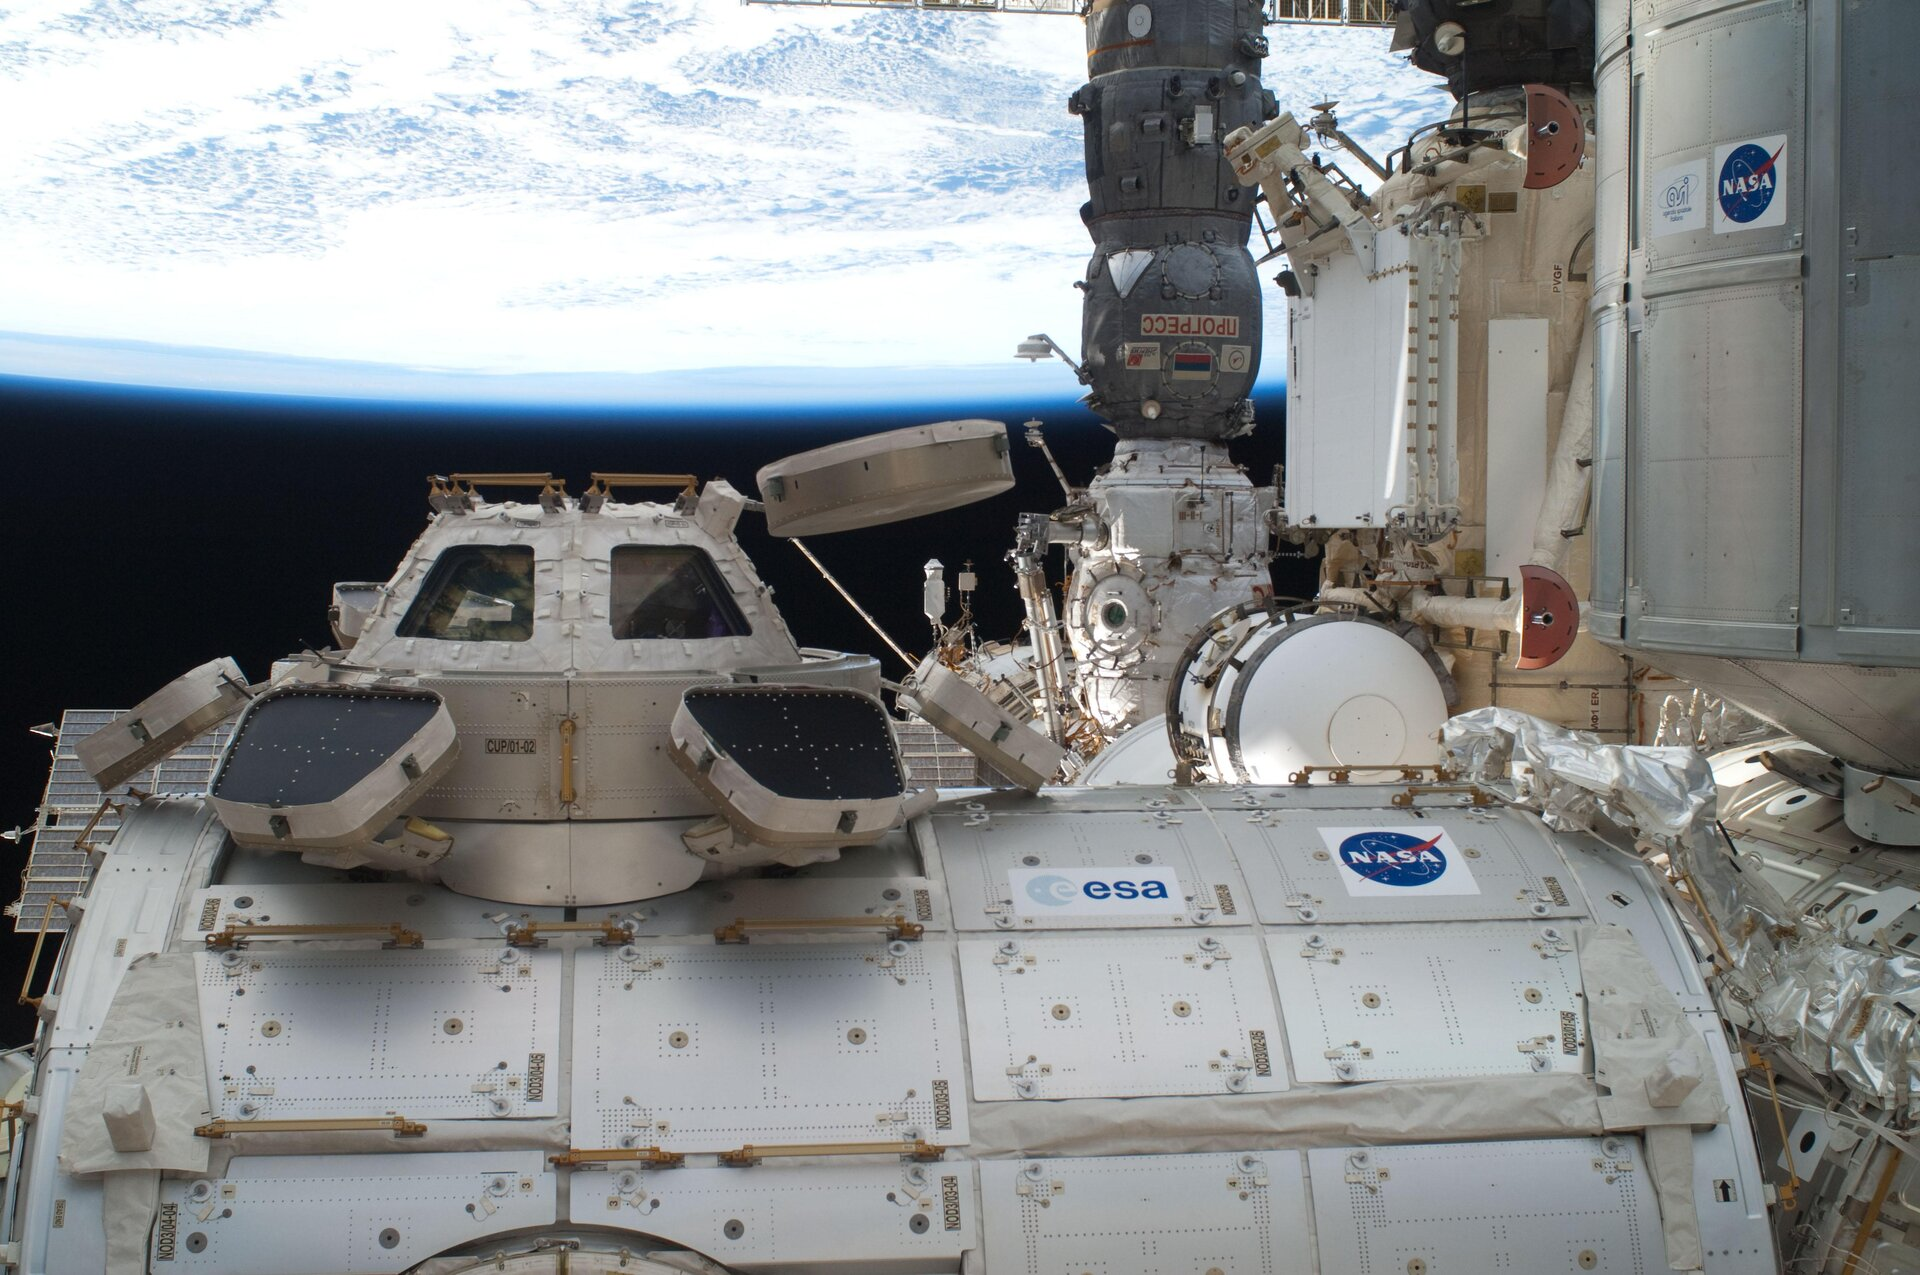 The European-built Cupola of the ISS